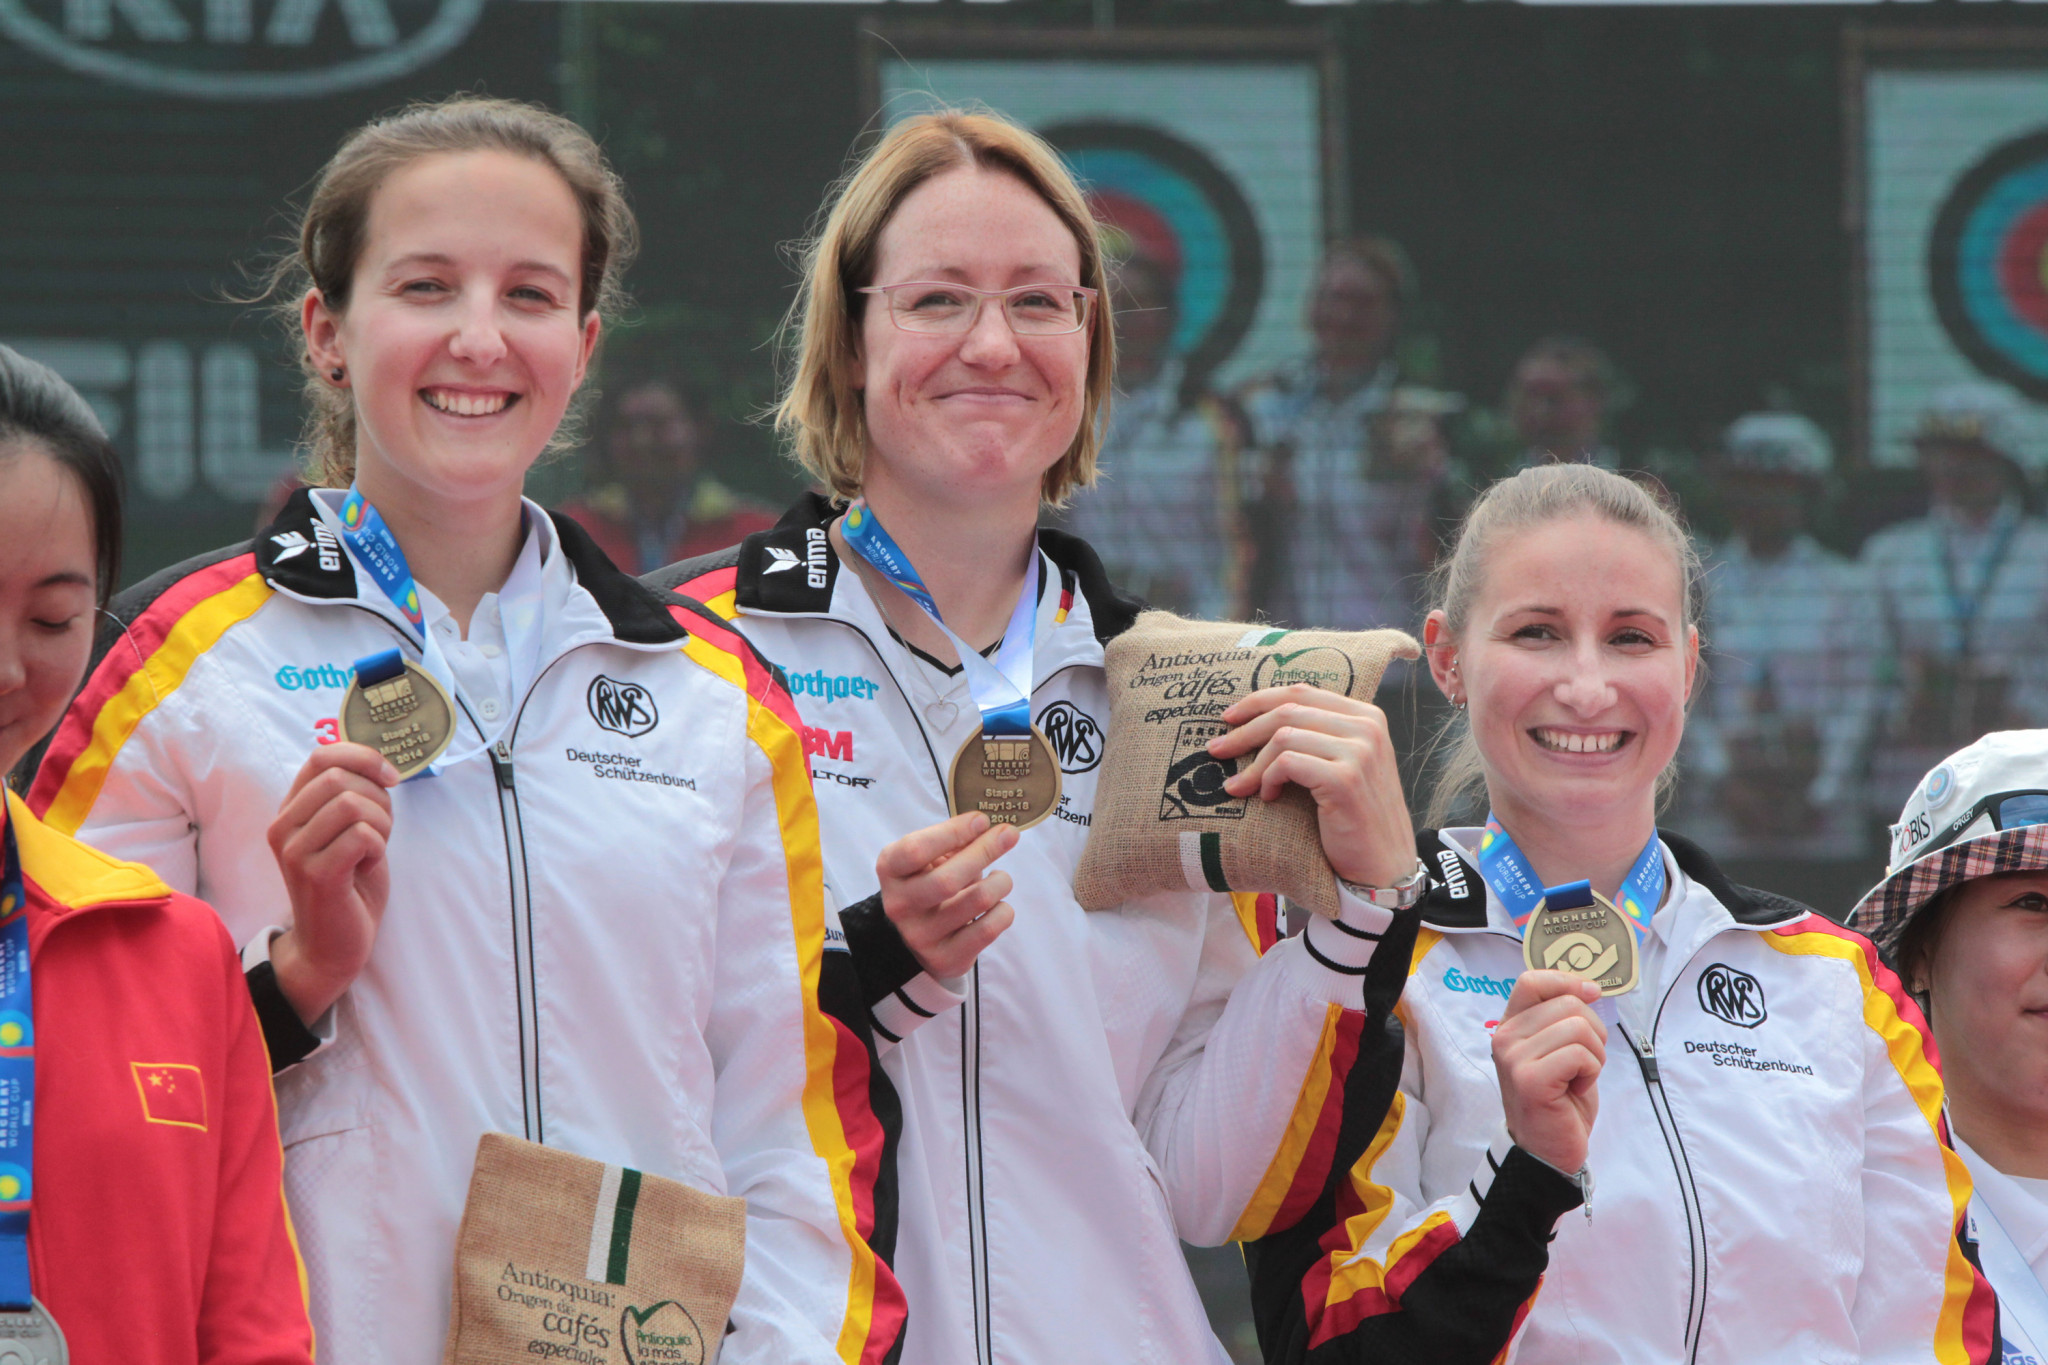 Elena Richter, left, was part of the gold medal-winning German team at the Archery World Cup in Colombia in 2014 ©Getty Images